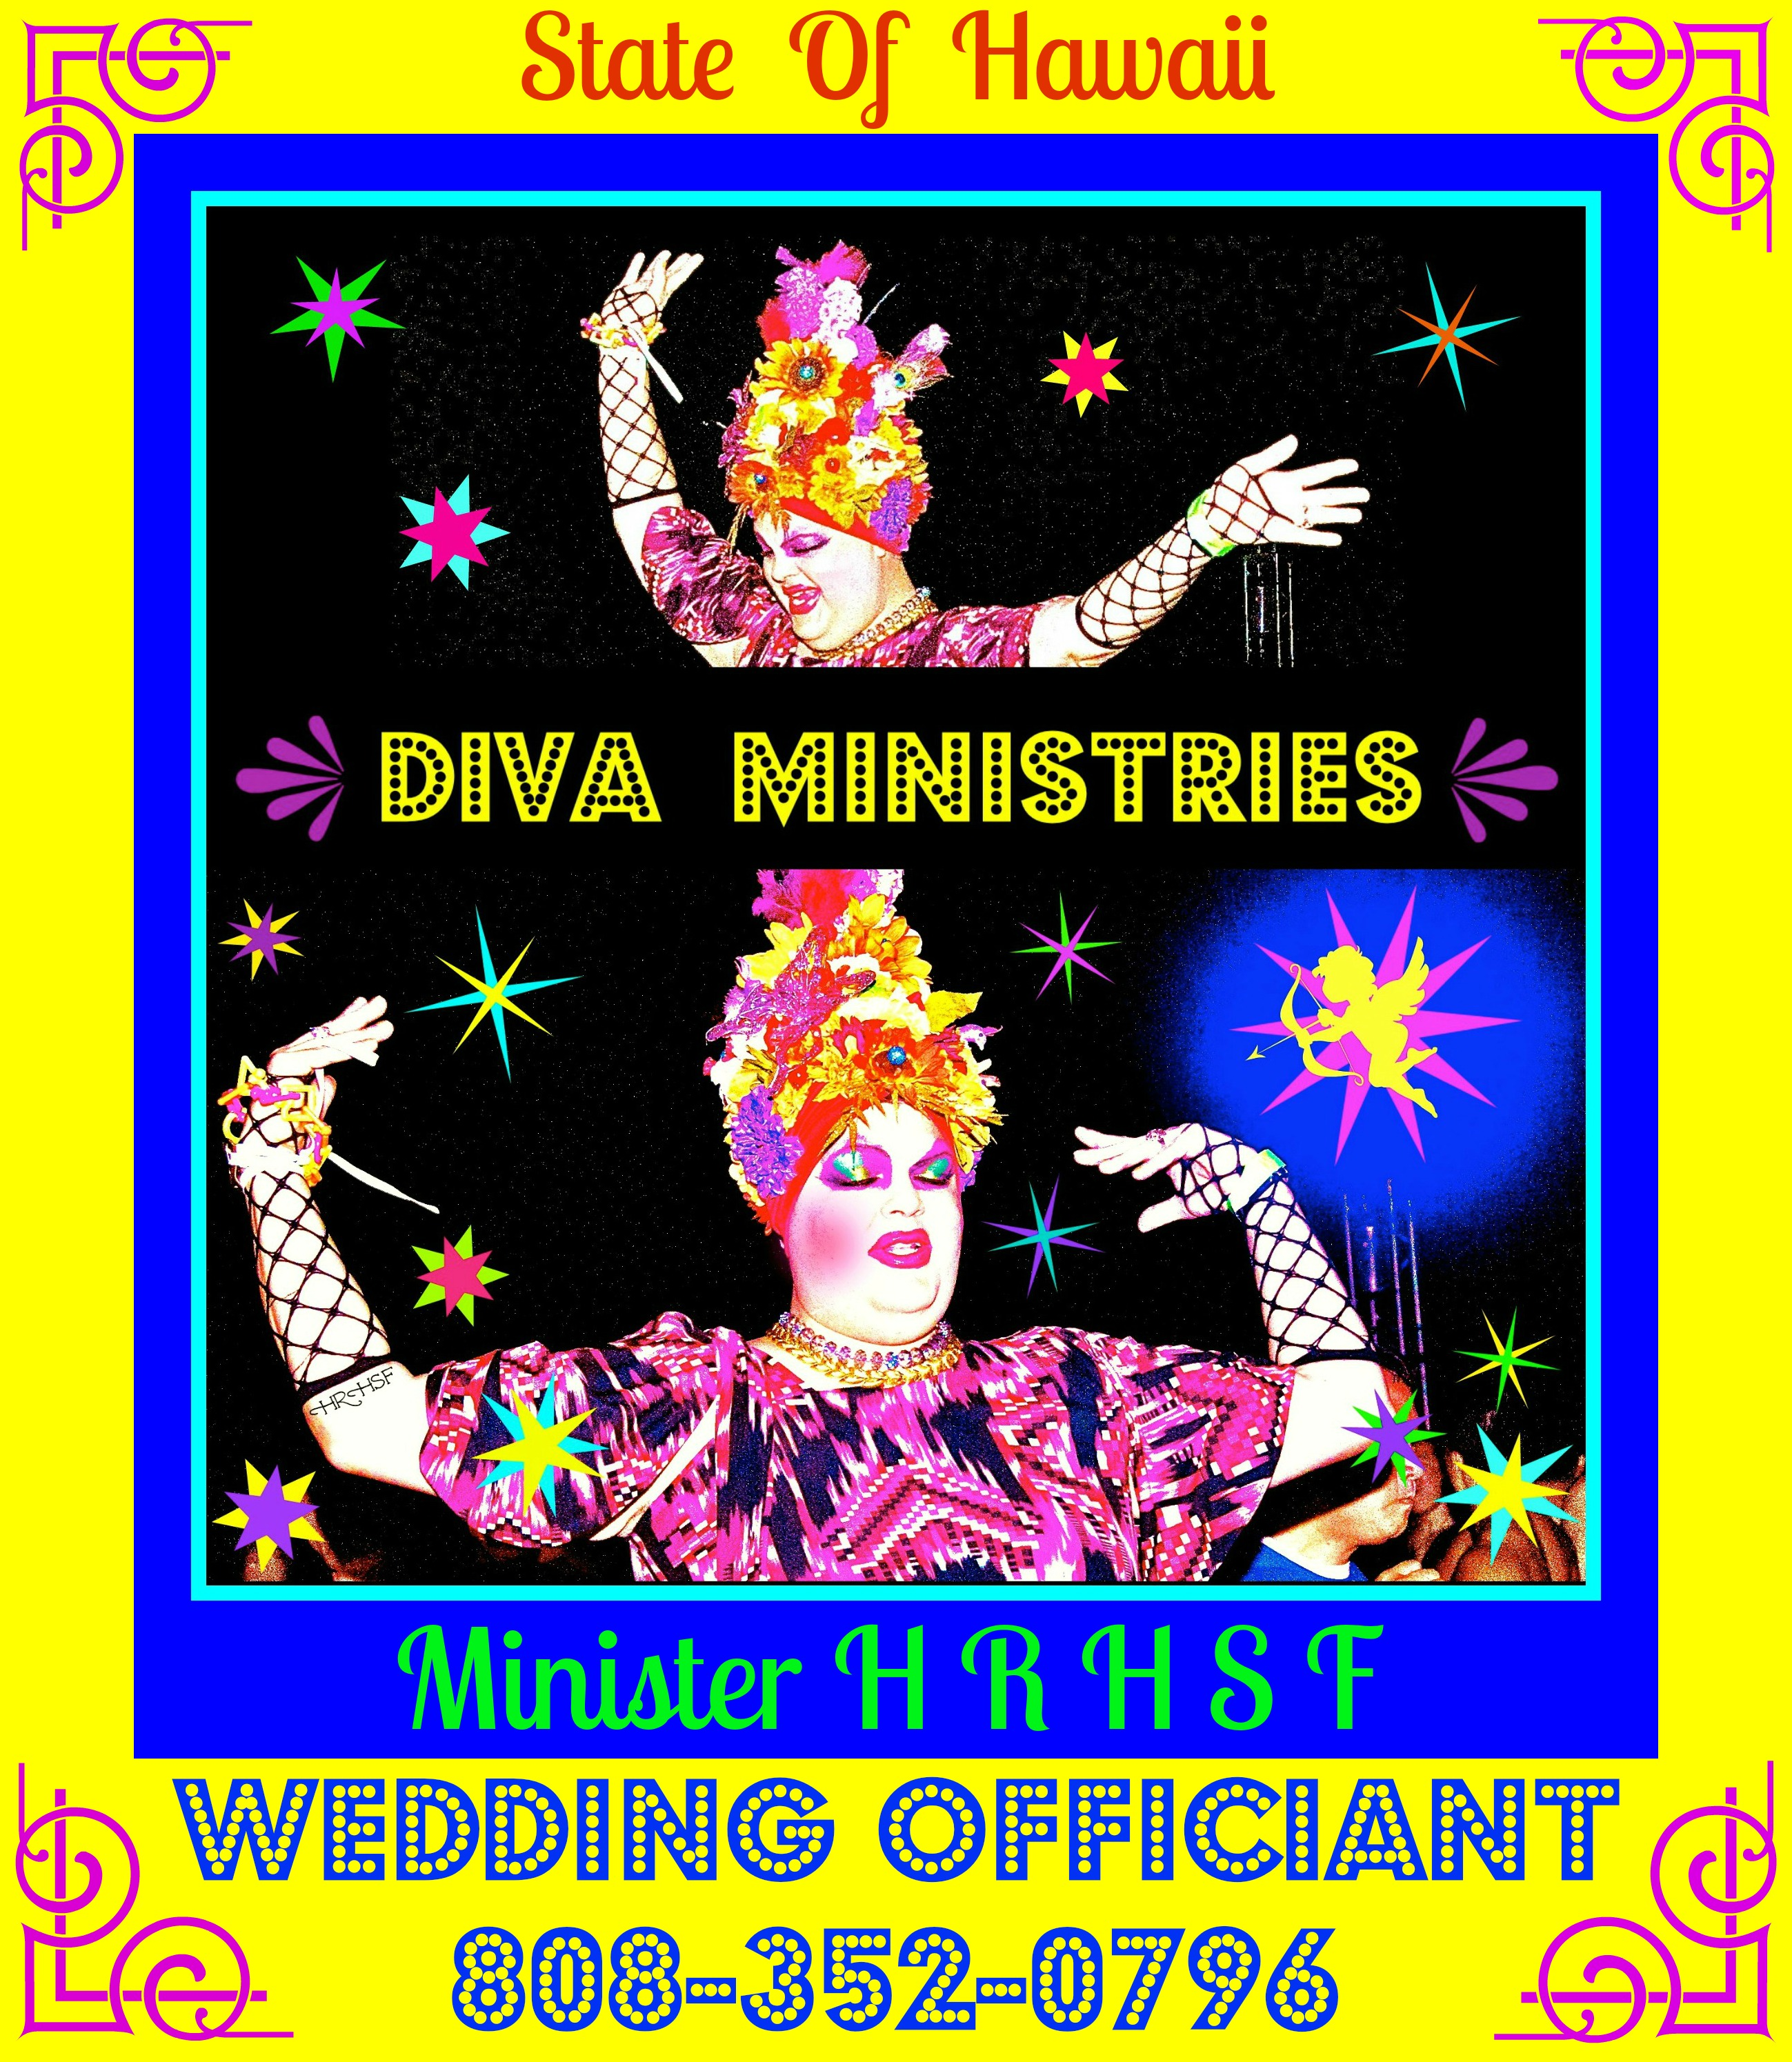 Hawaii State Wedding Officiant, Minister HRH-SF